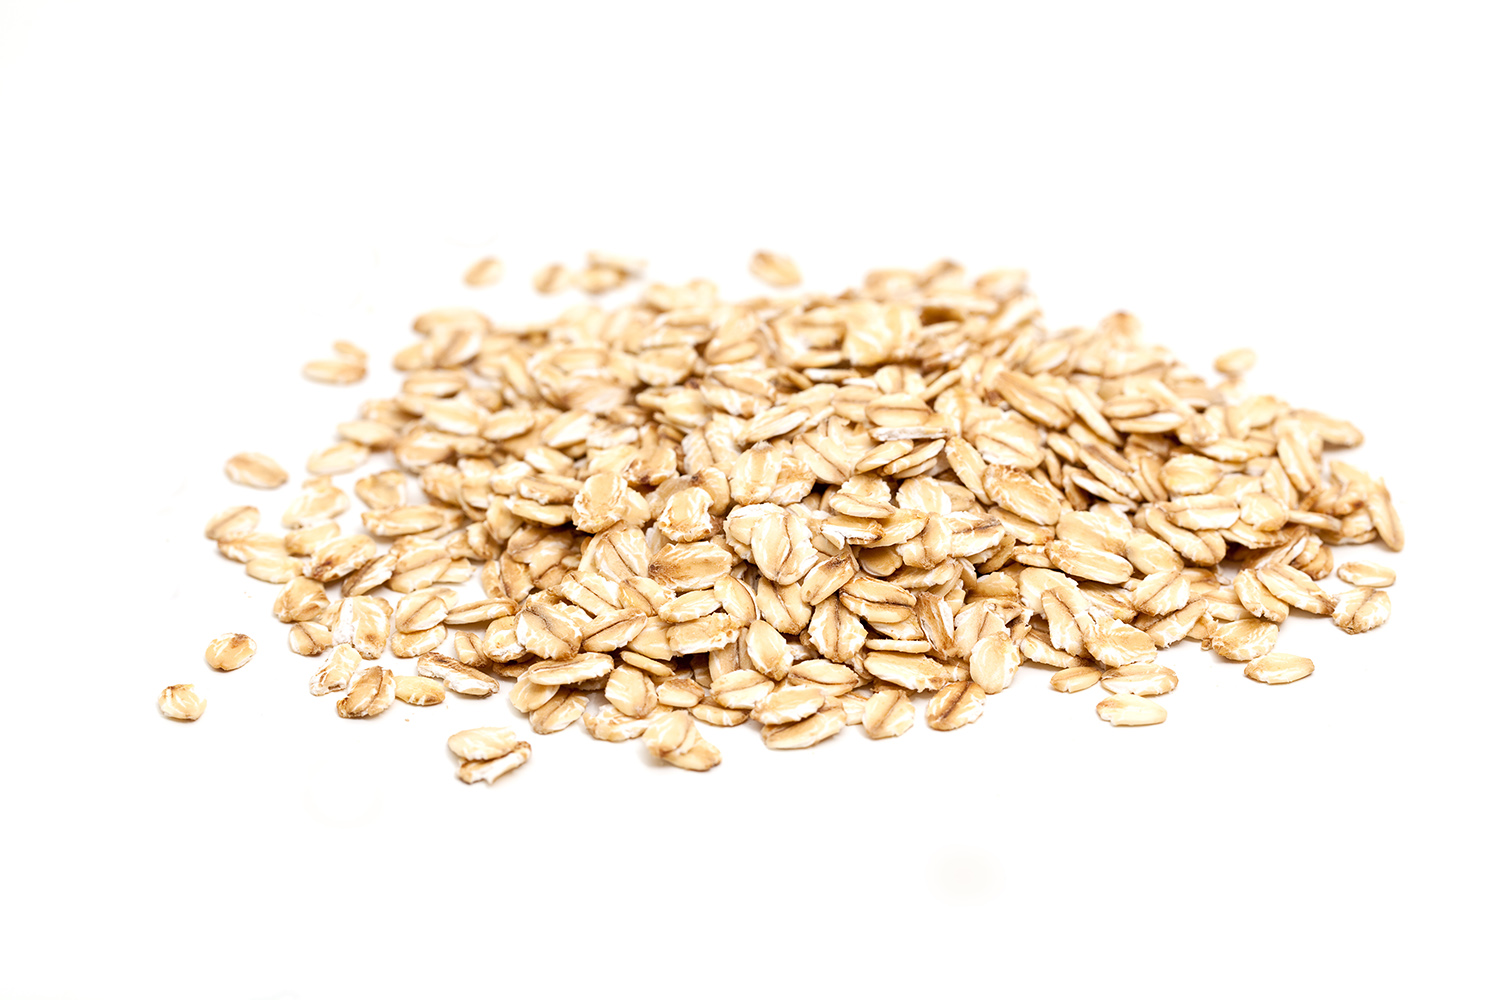 Oats helps to control cholesterol